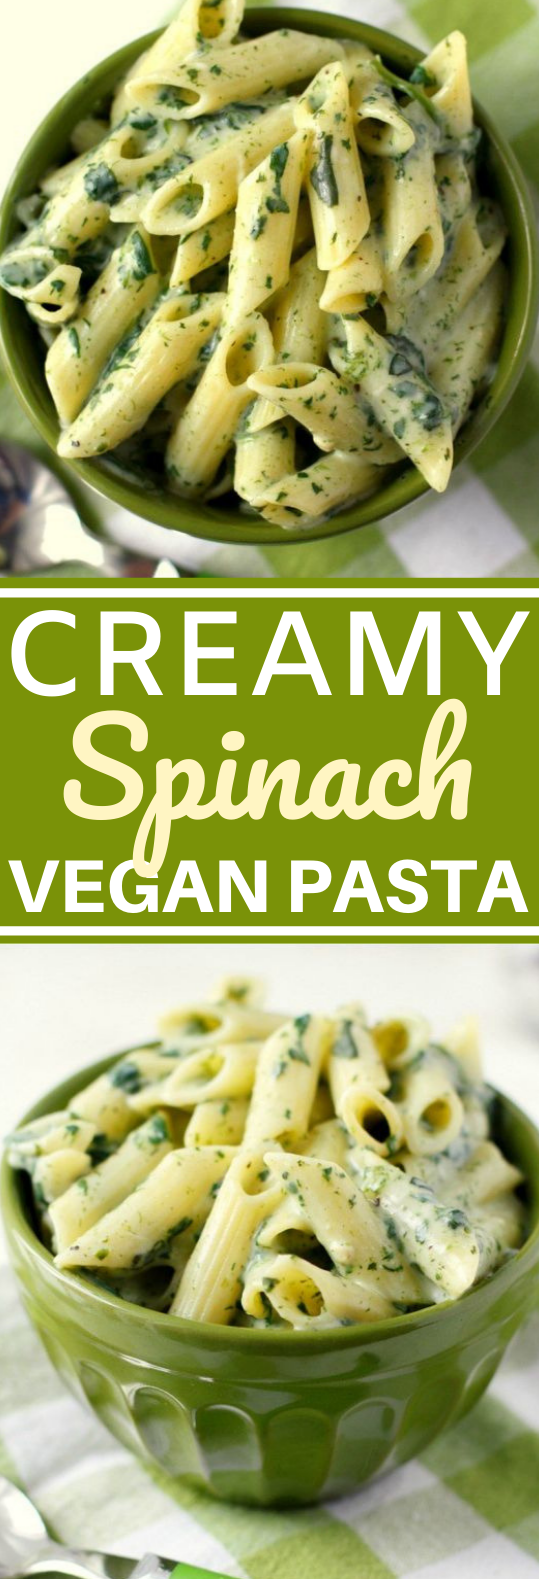 Pasta with Creamy Spinach Sauce #vegetarian #dinner #pasta #vegan #meatless